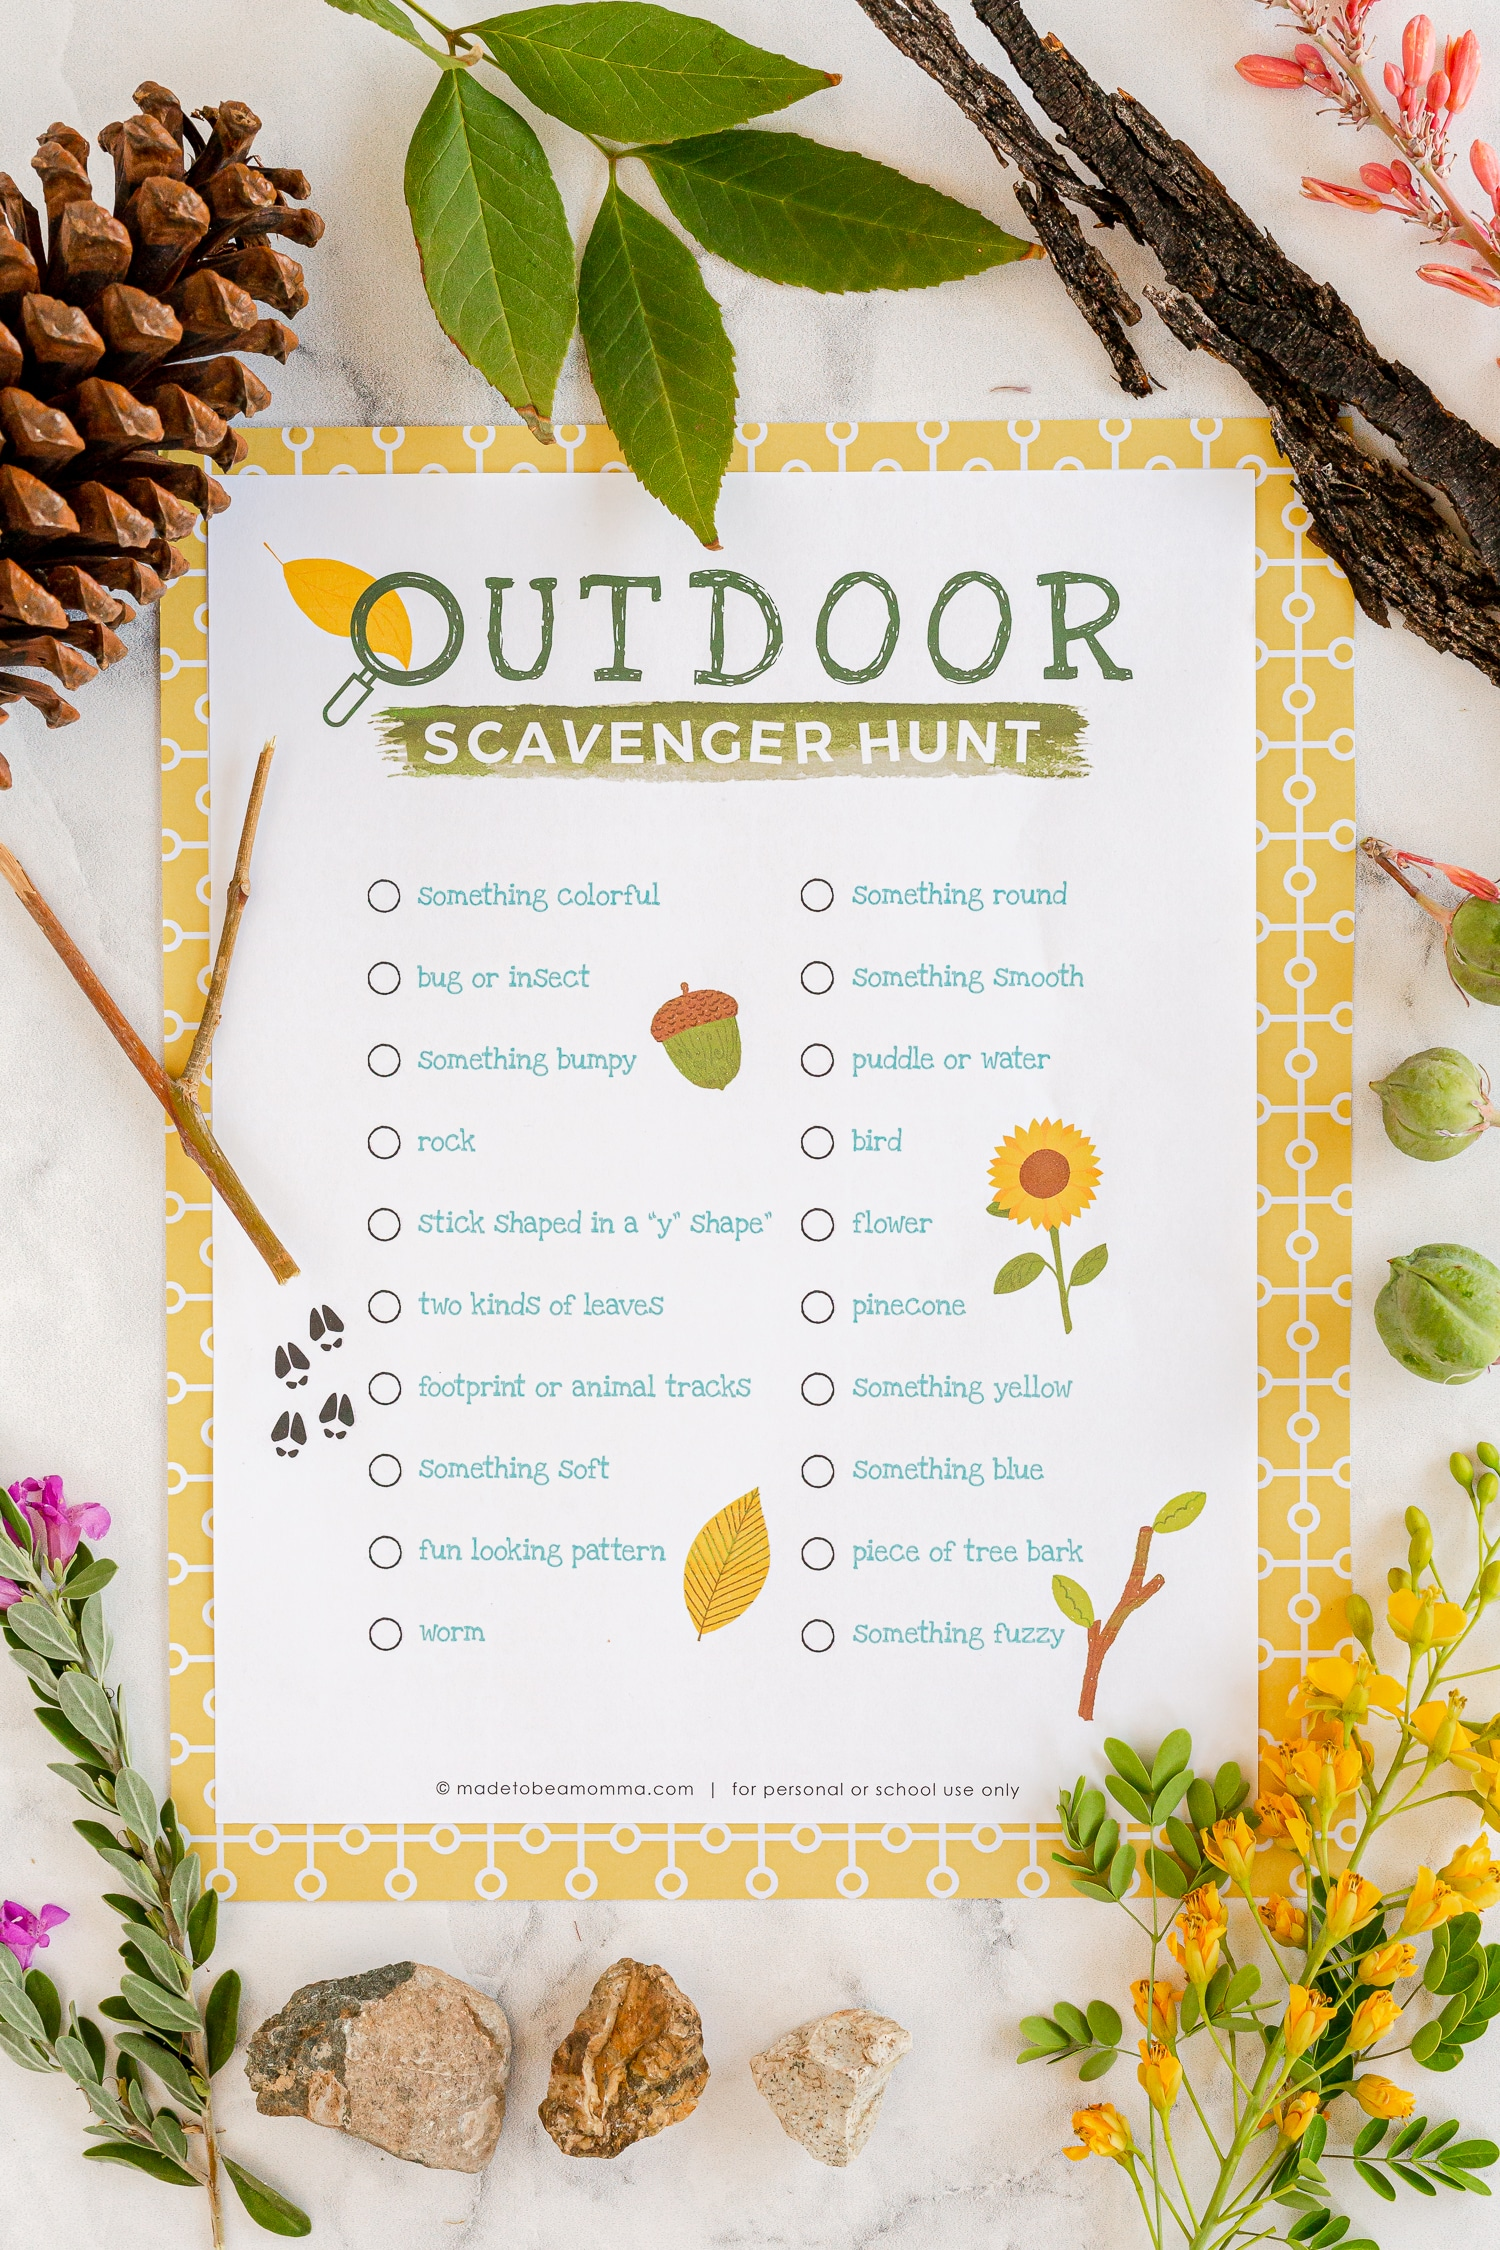 Outdoor Scavenger Hunt Printable surrounded by nature items